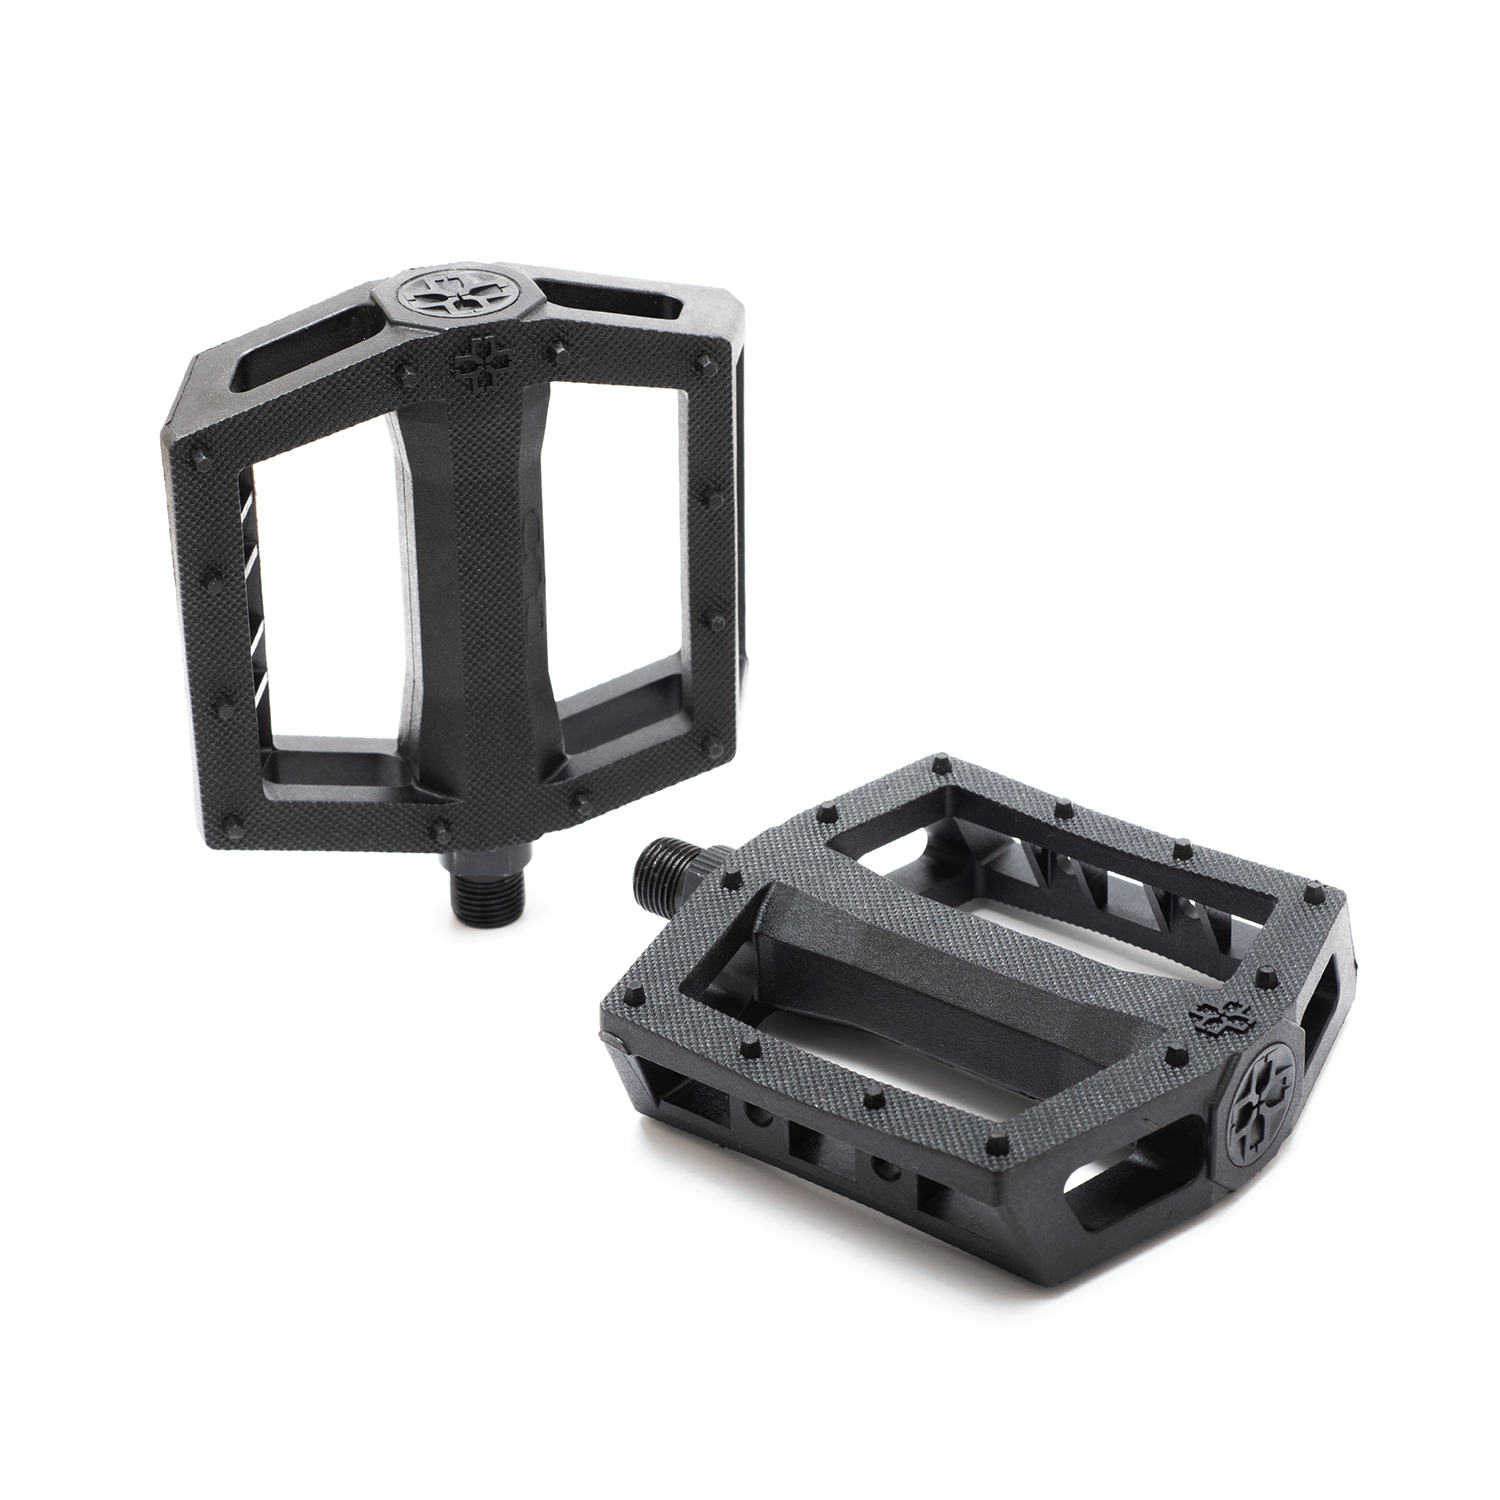 DUO Brand Resilite Pedals in black